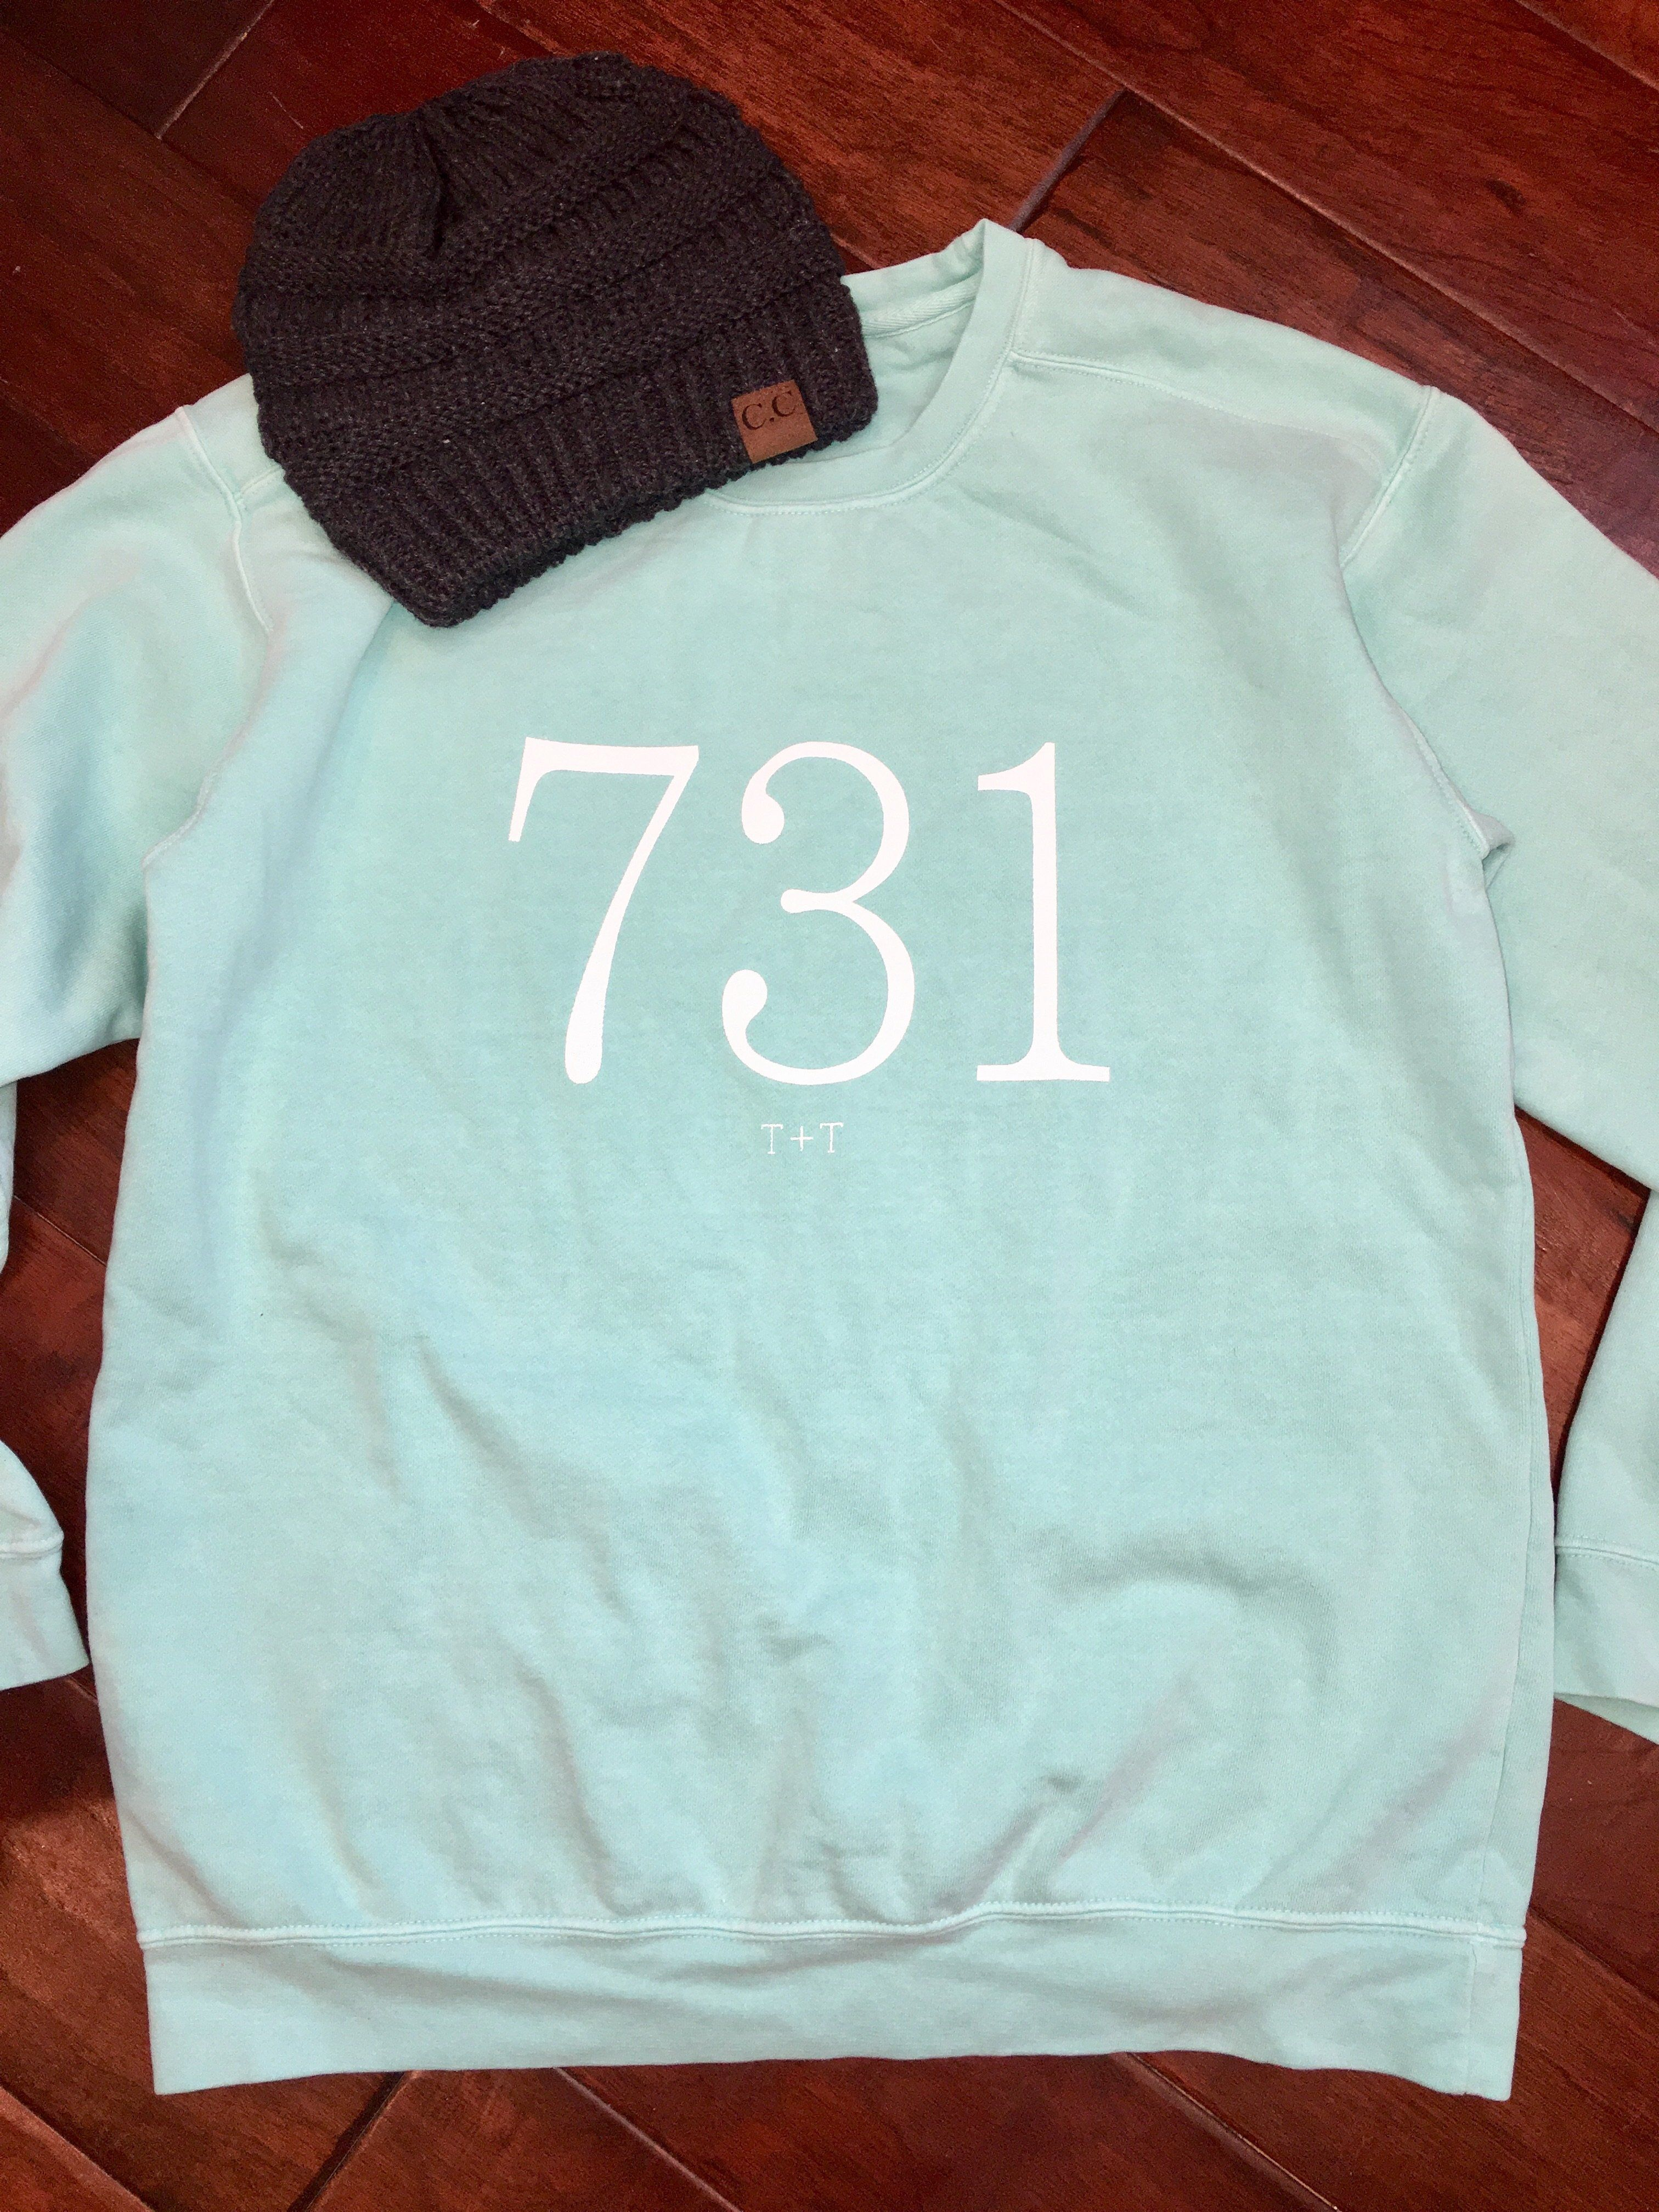 Comfort Colors Sweatshirt With White Ink Unisex Sizing S 3xl